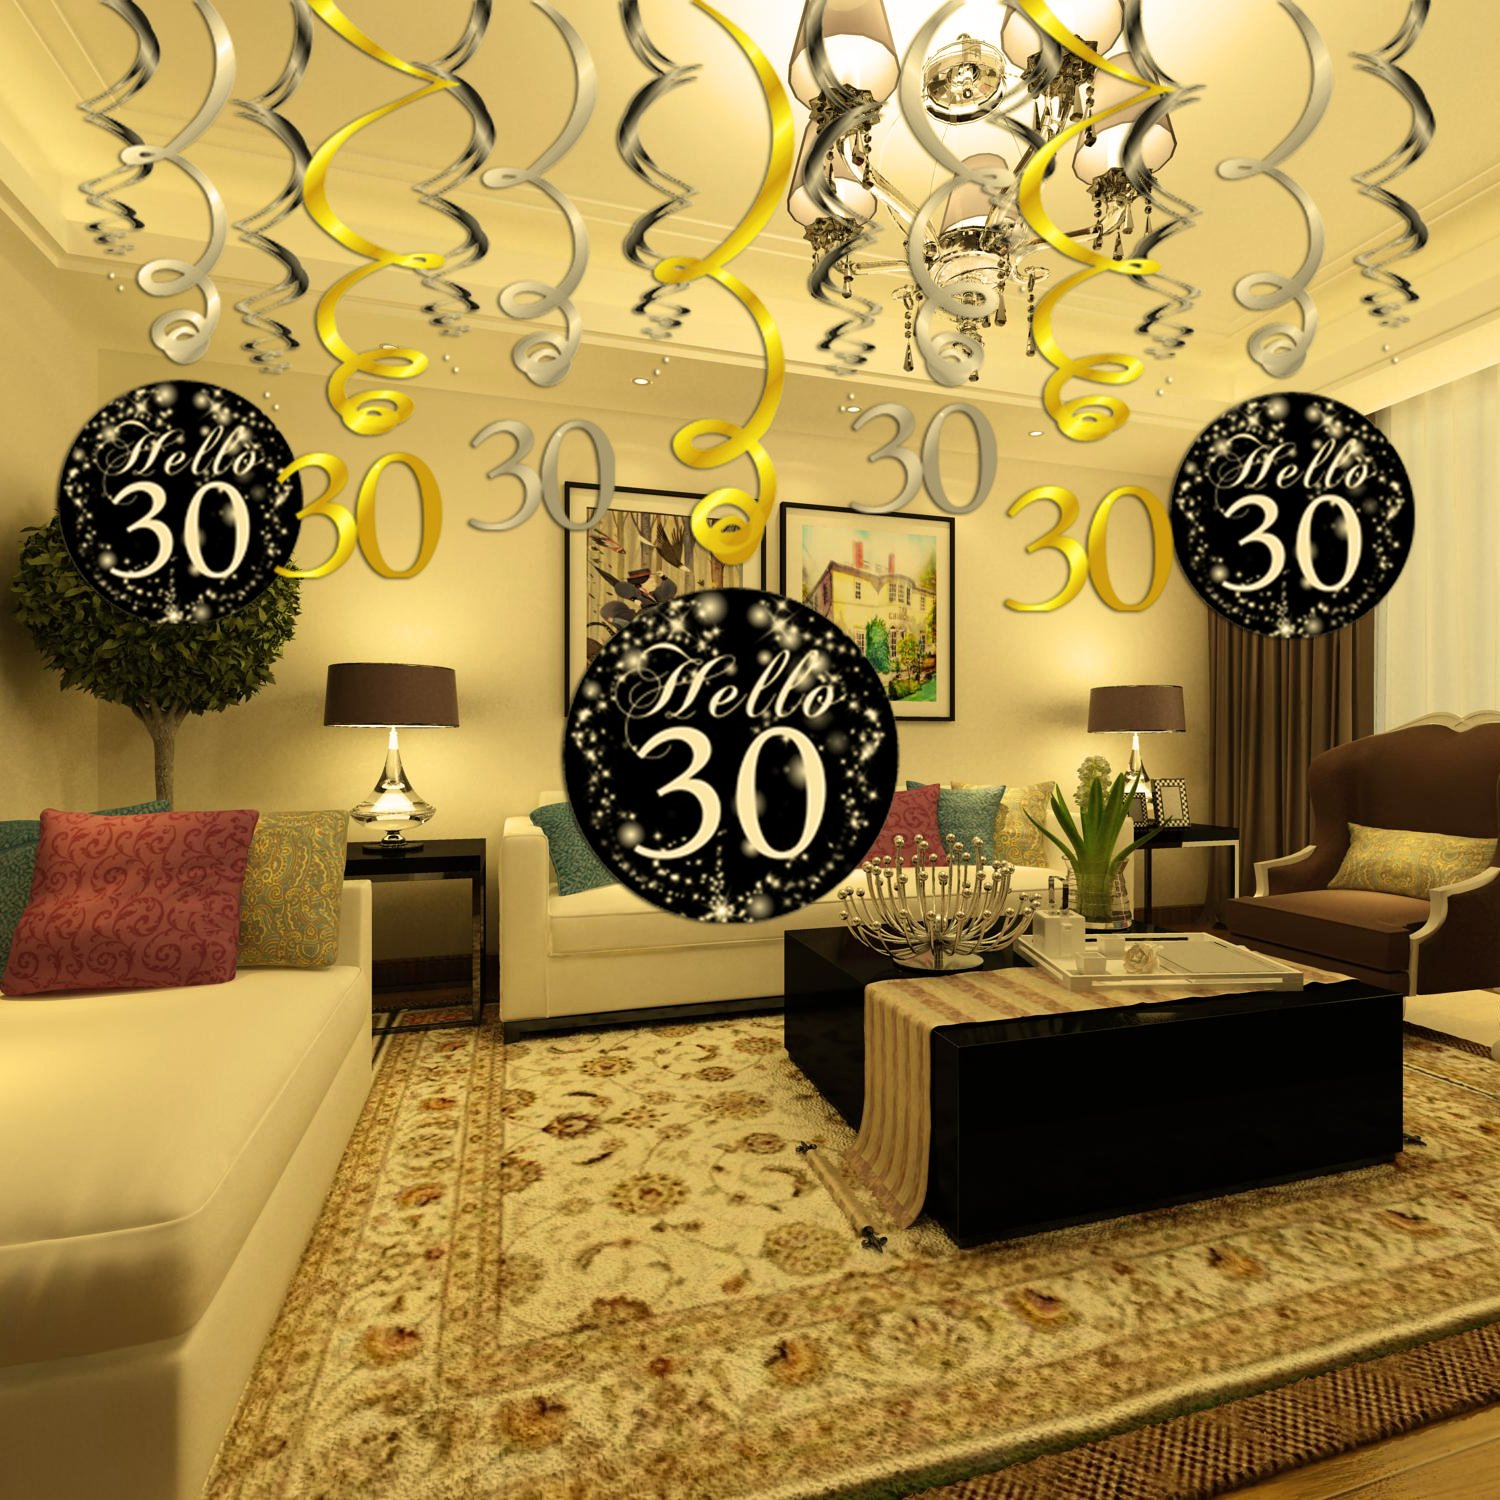 30 Birthday DecorationsHowaf Gold Black Silver Decor 30th Hanging Swirl 15 Counts